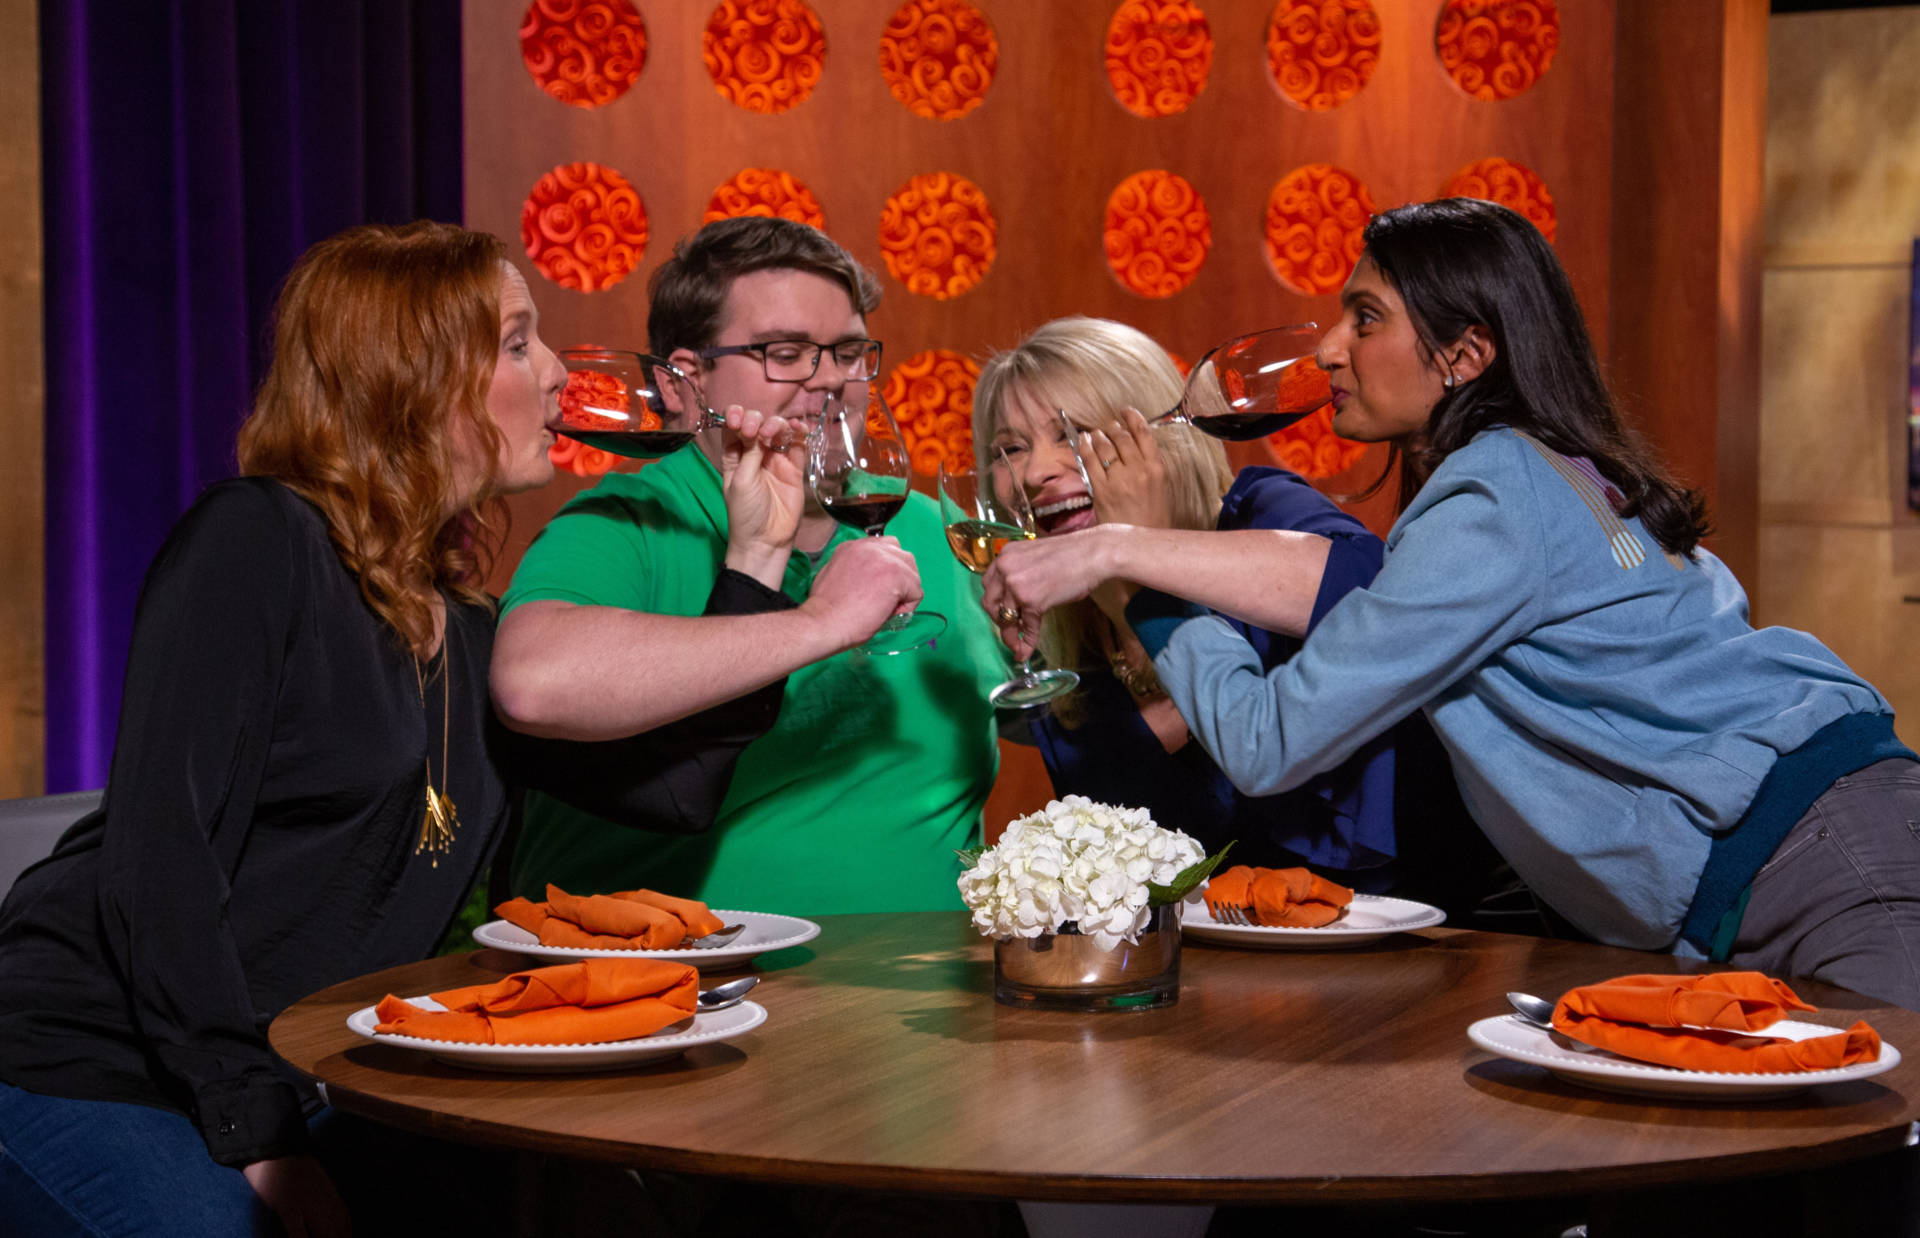 Host Leslie Sbrocco and guests on the set of season 14 episode 6.